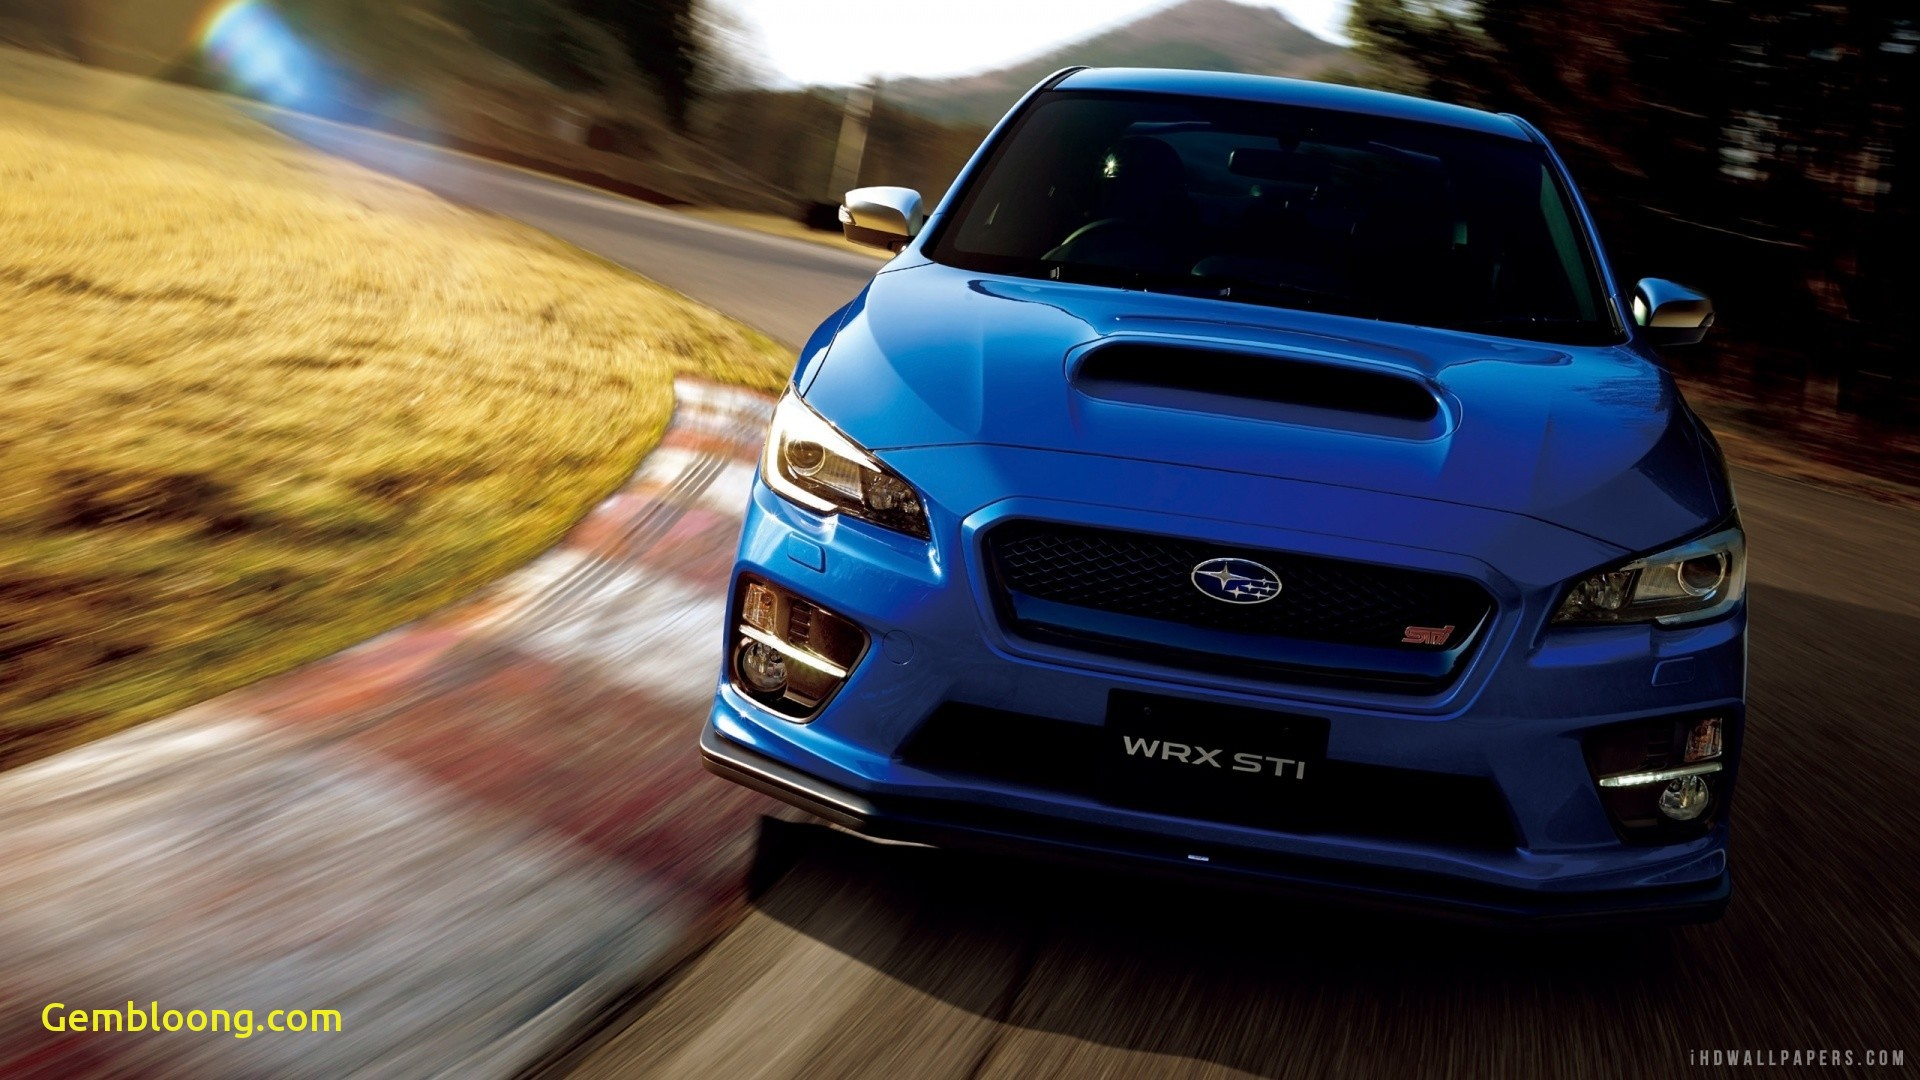 2015 Subaru Wrx Fresh Subaru iPhone Wallpaper 74 Images